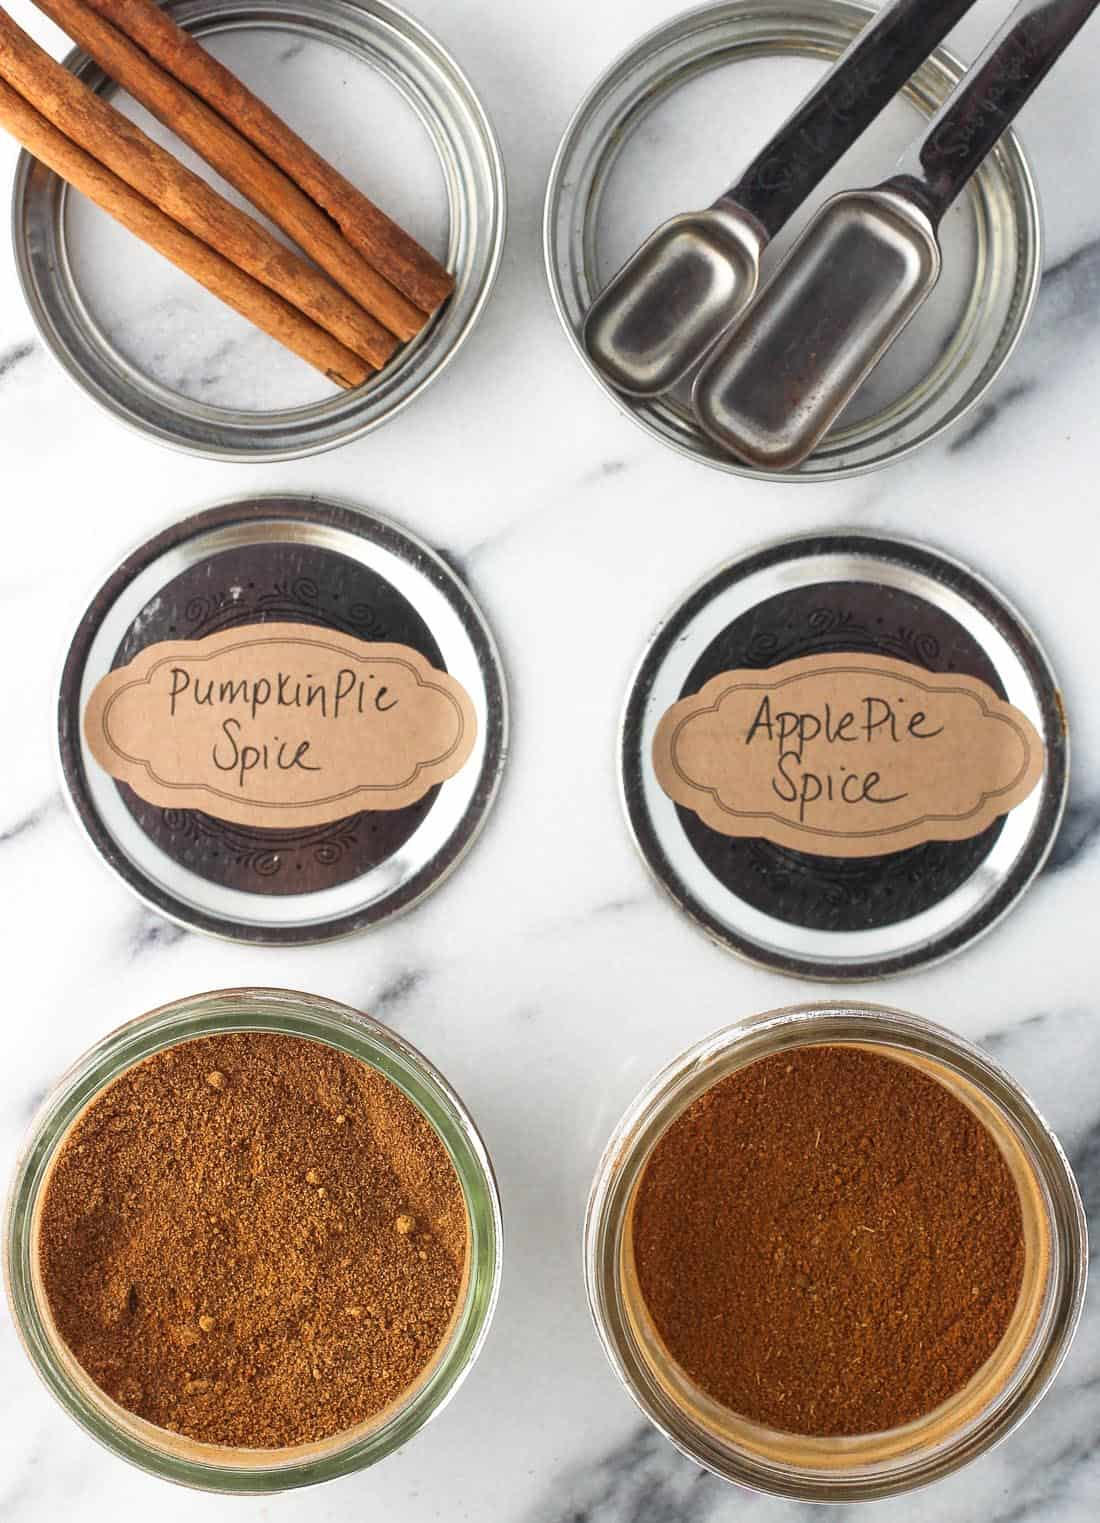 Jars and lids of pumpkin pie spice (left) and apple pie spice (right).